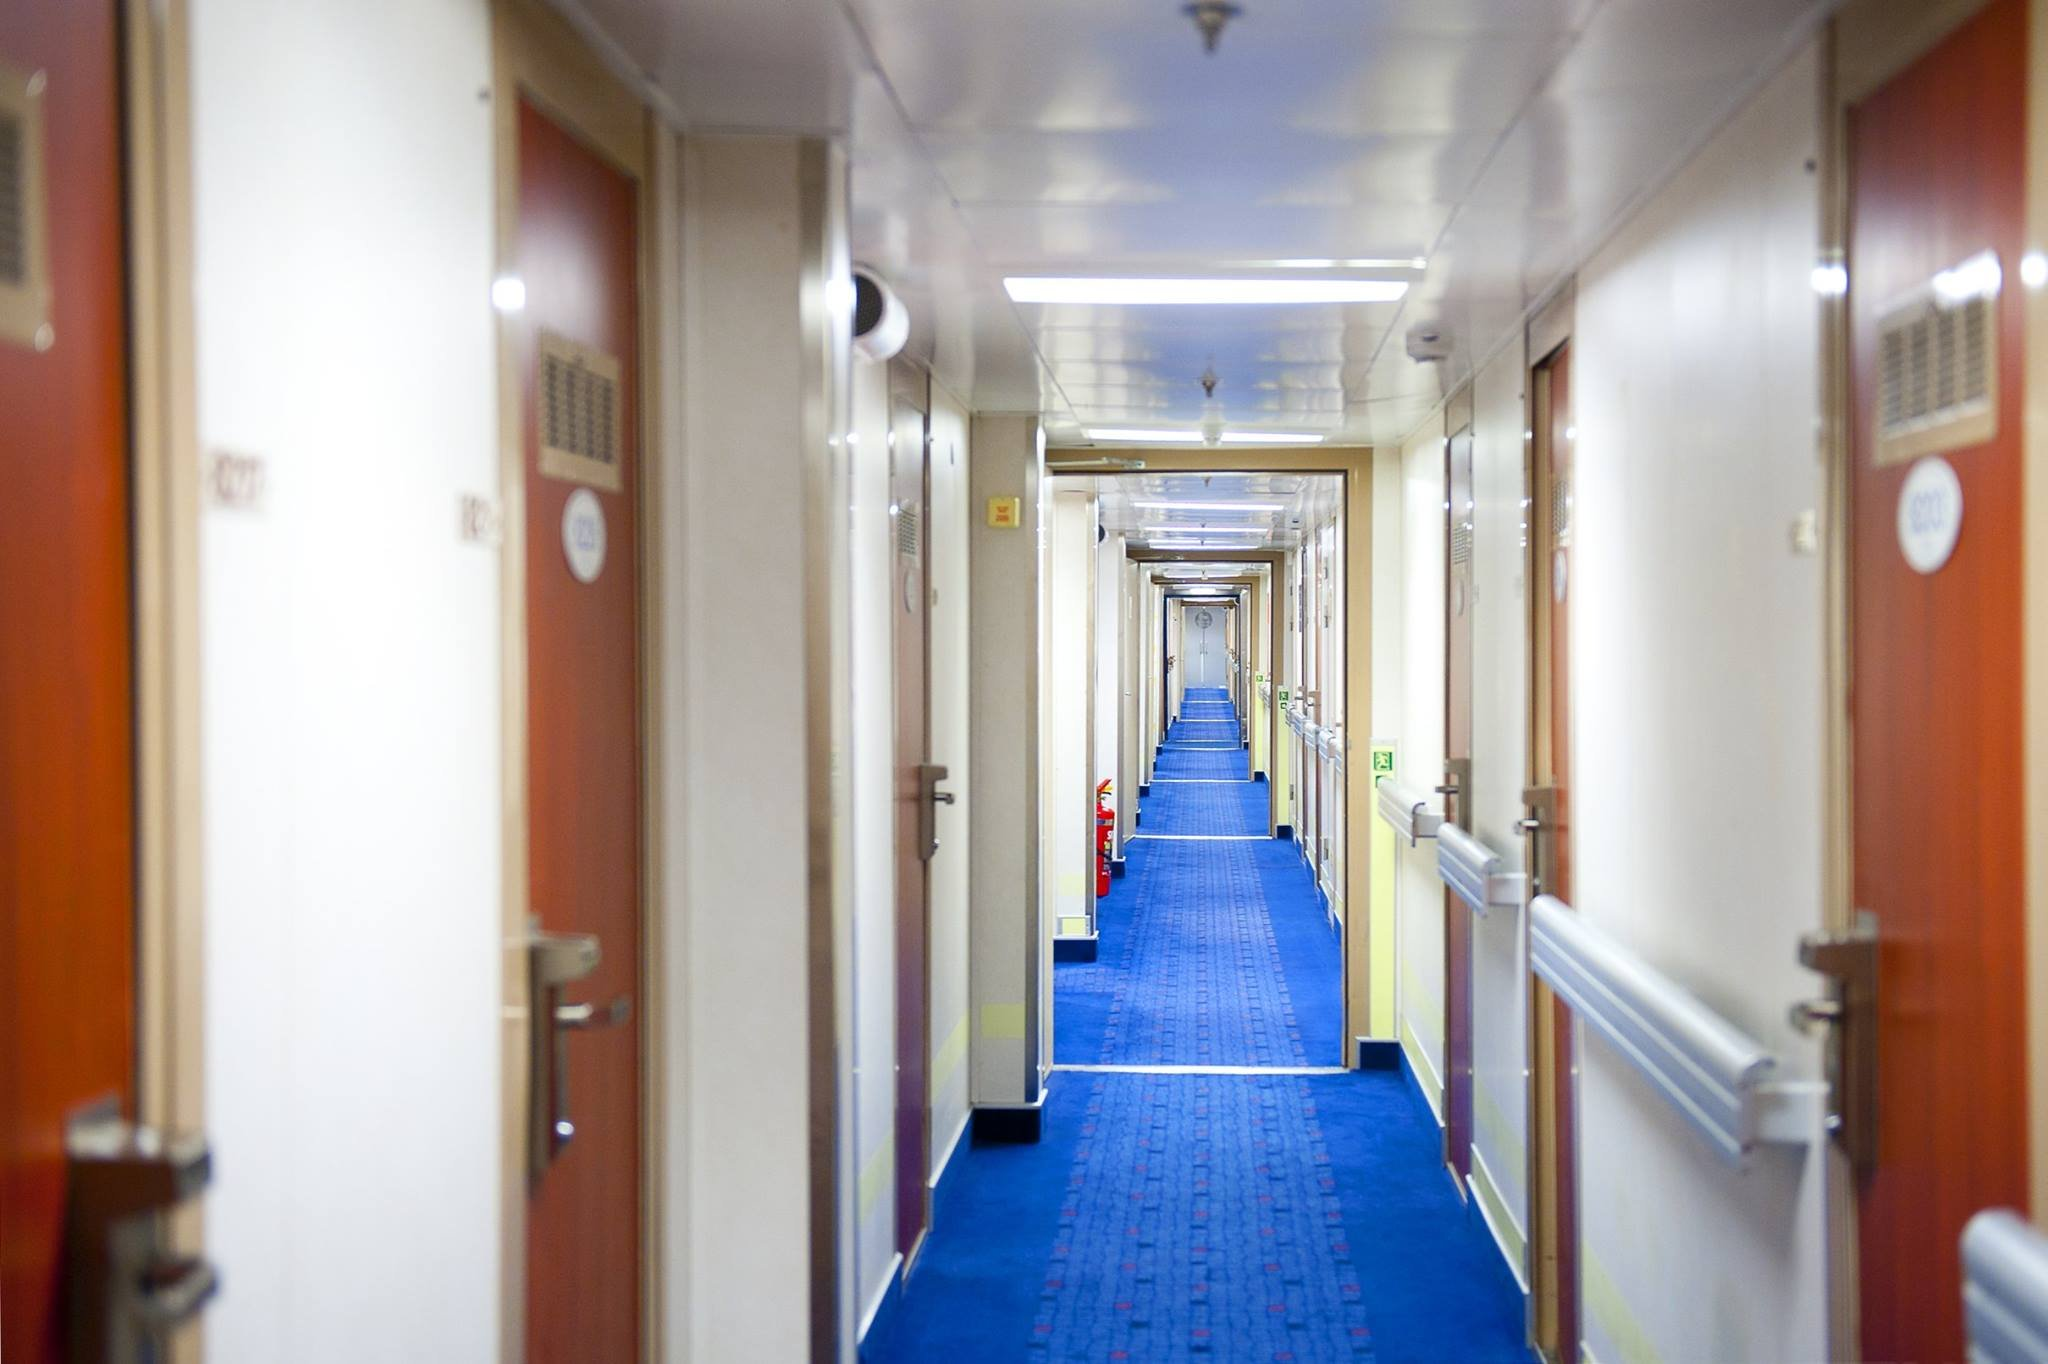 Ship Tip: Staterooms located near elevators and stairs can experience increased foot traffic and noise. Clients with sound concerns will find peace further away from these main passenger areas. (Source: Cruise Lines International Association via Facebook)